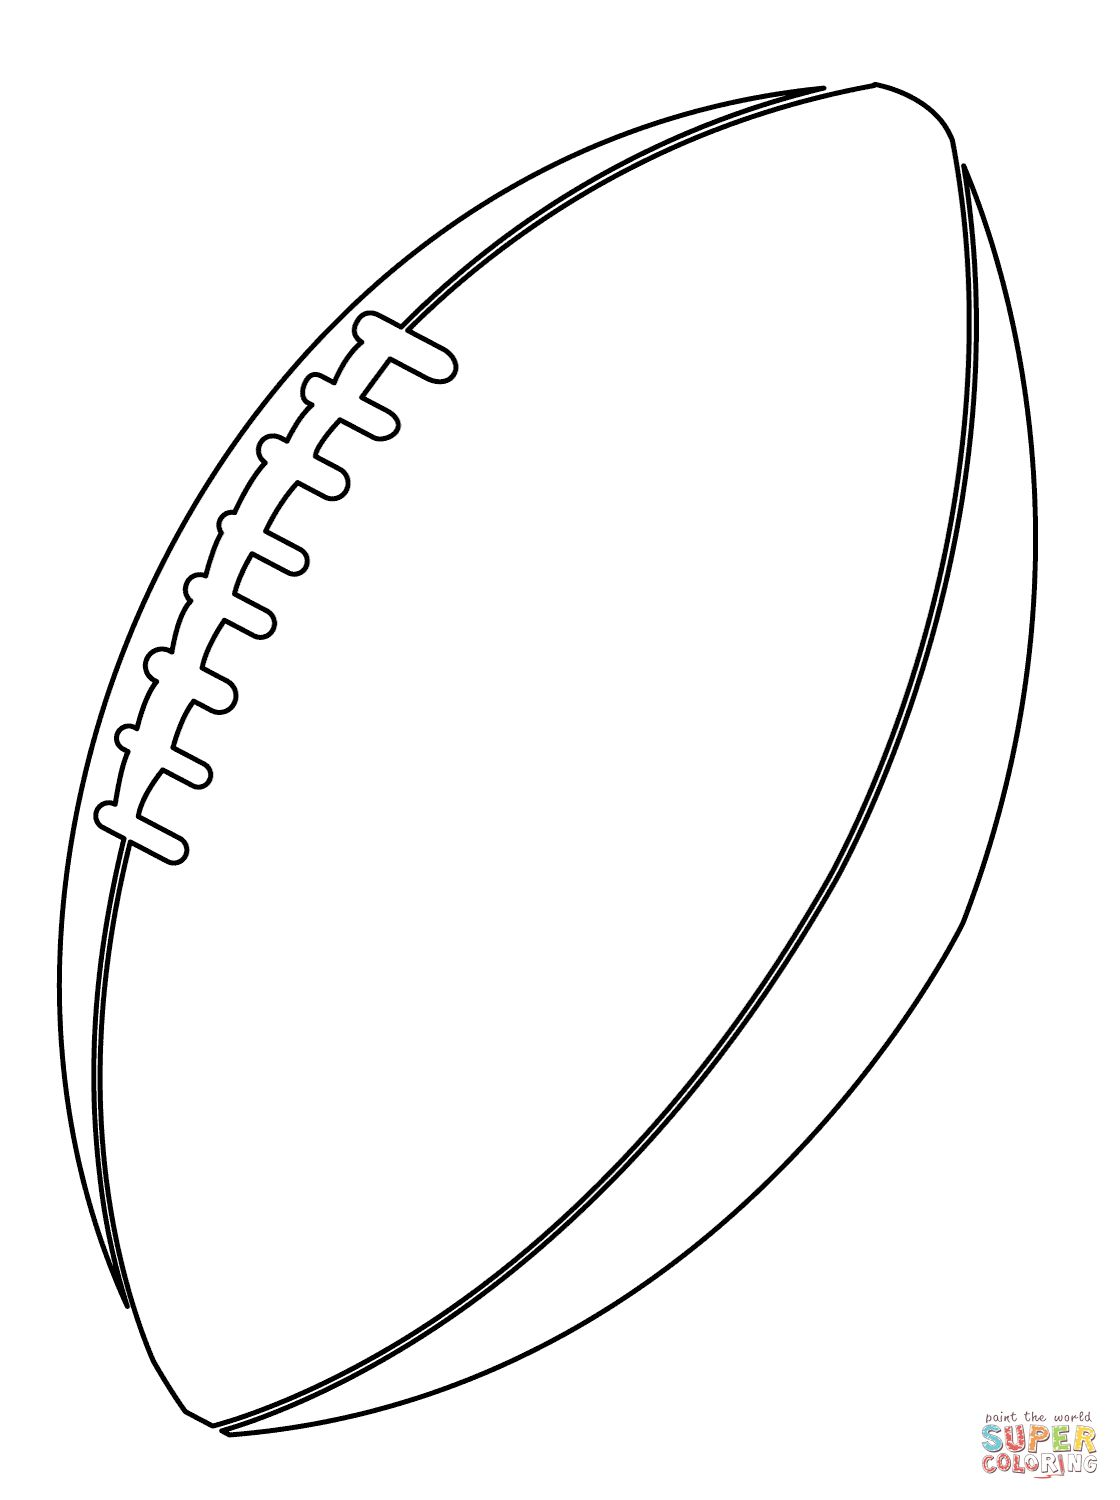 1120x1500 American Football Ball Coloring Page For Football Coloring Pages